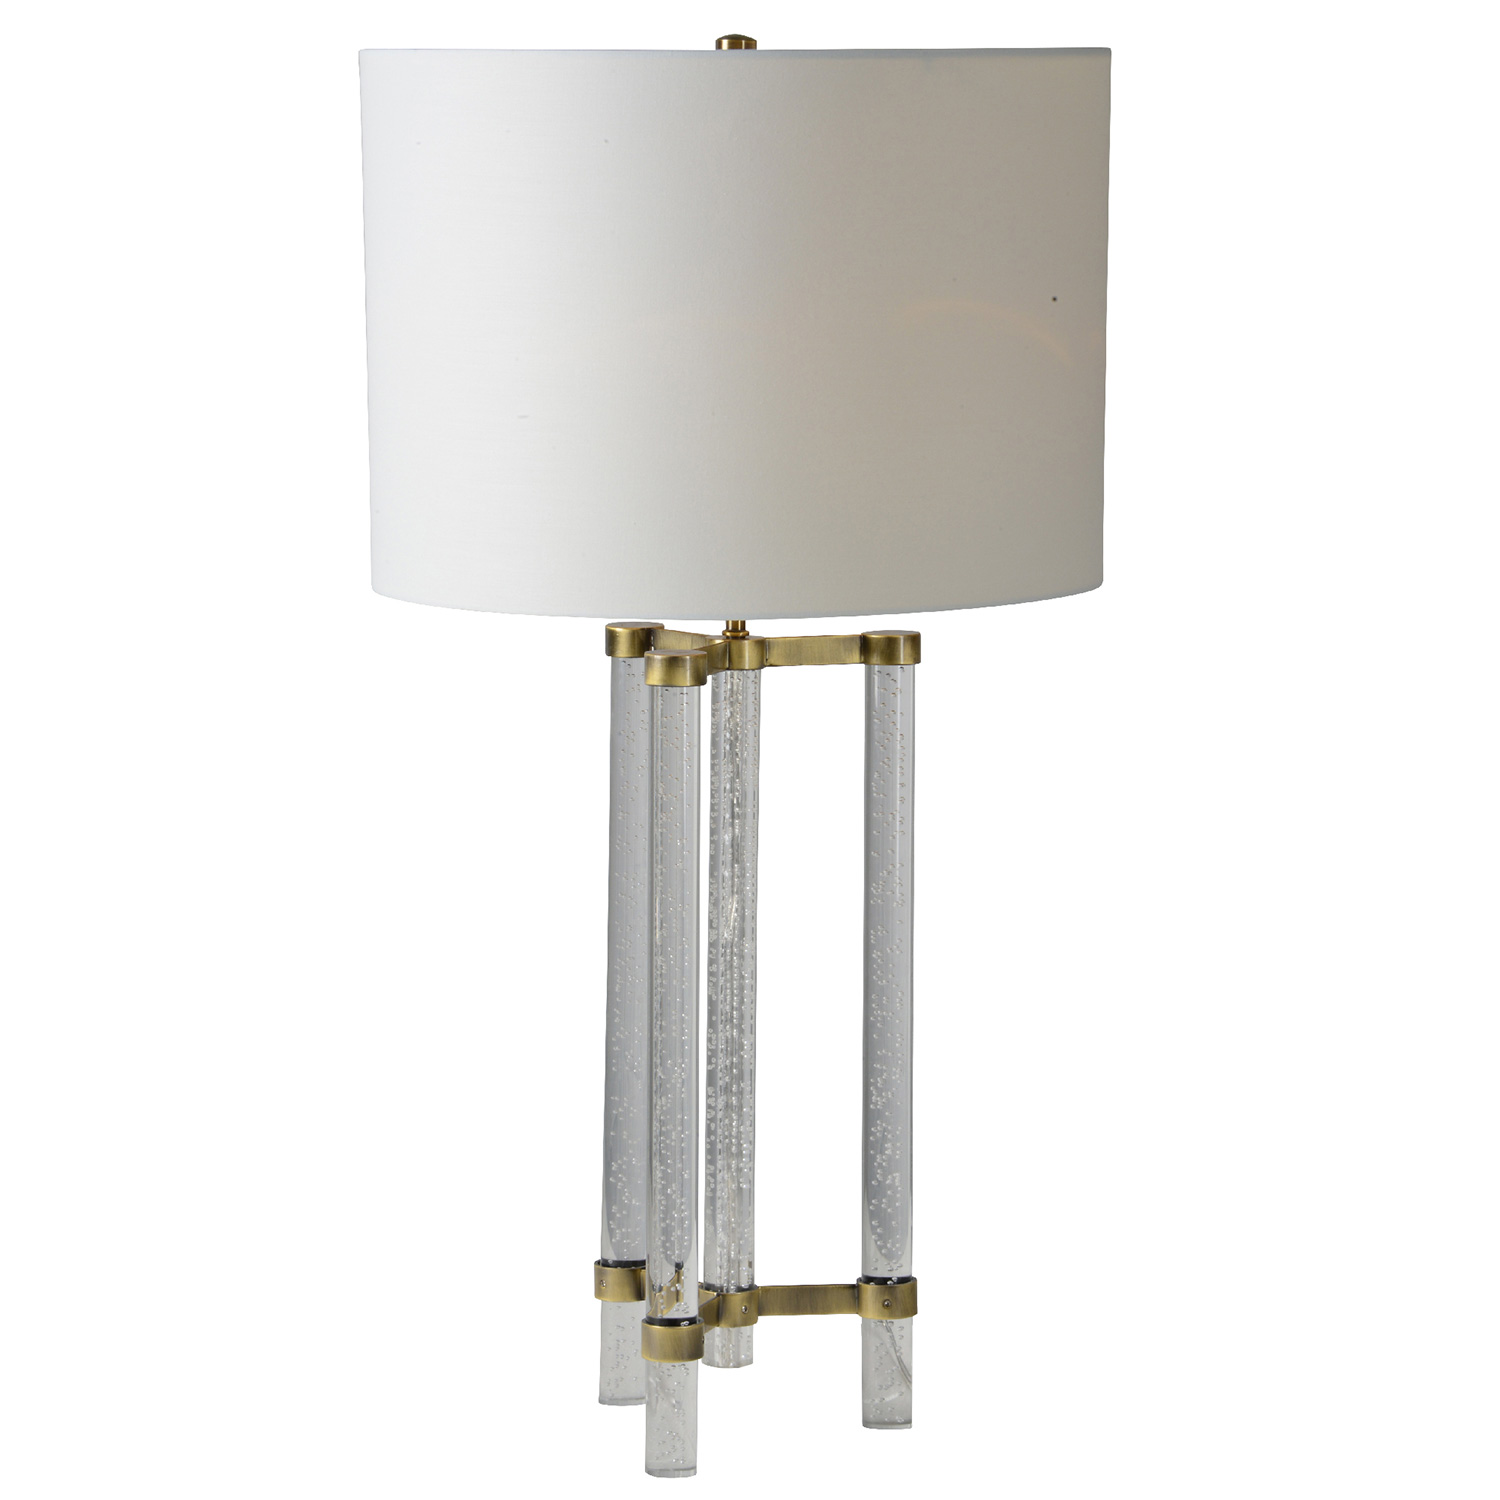 Ren-Wil Dais Table Lamp - Antique Gold Plated